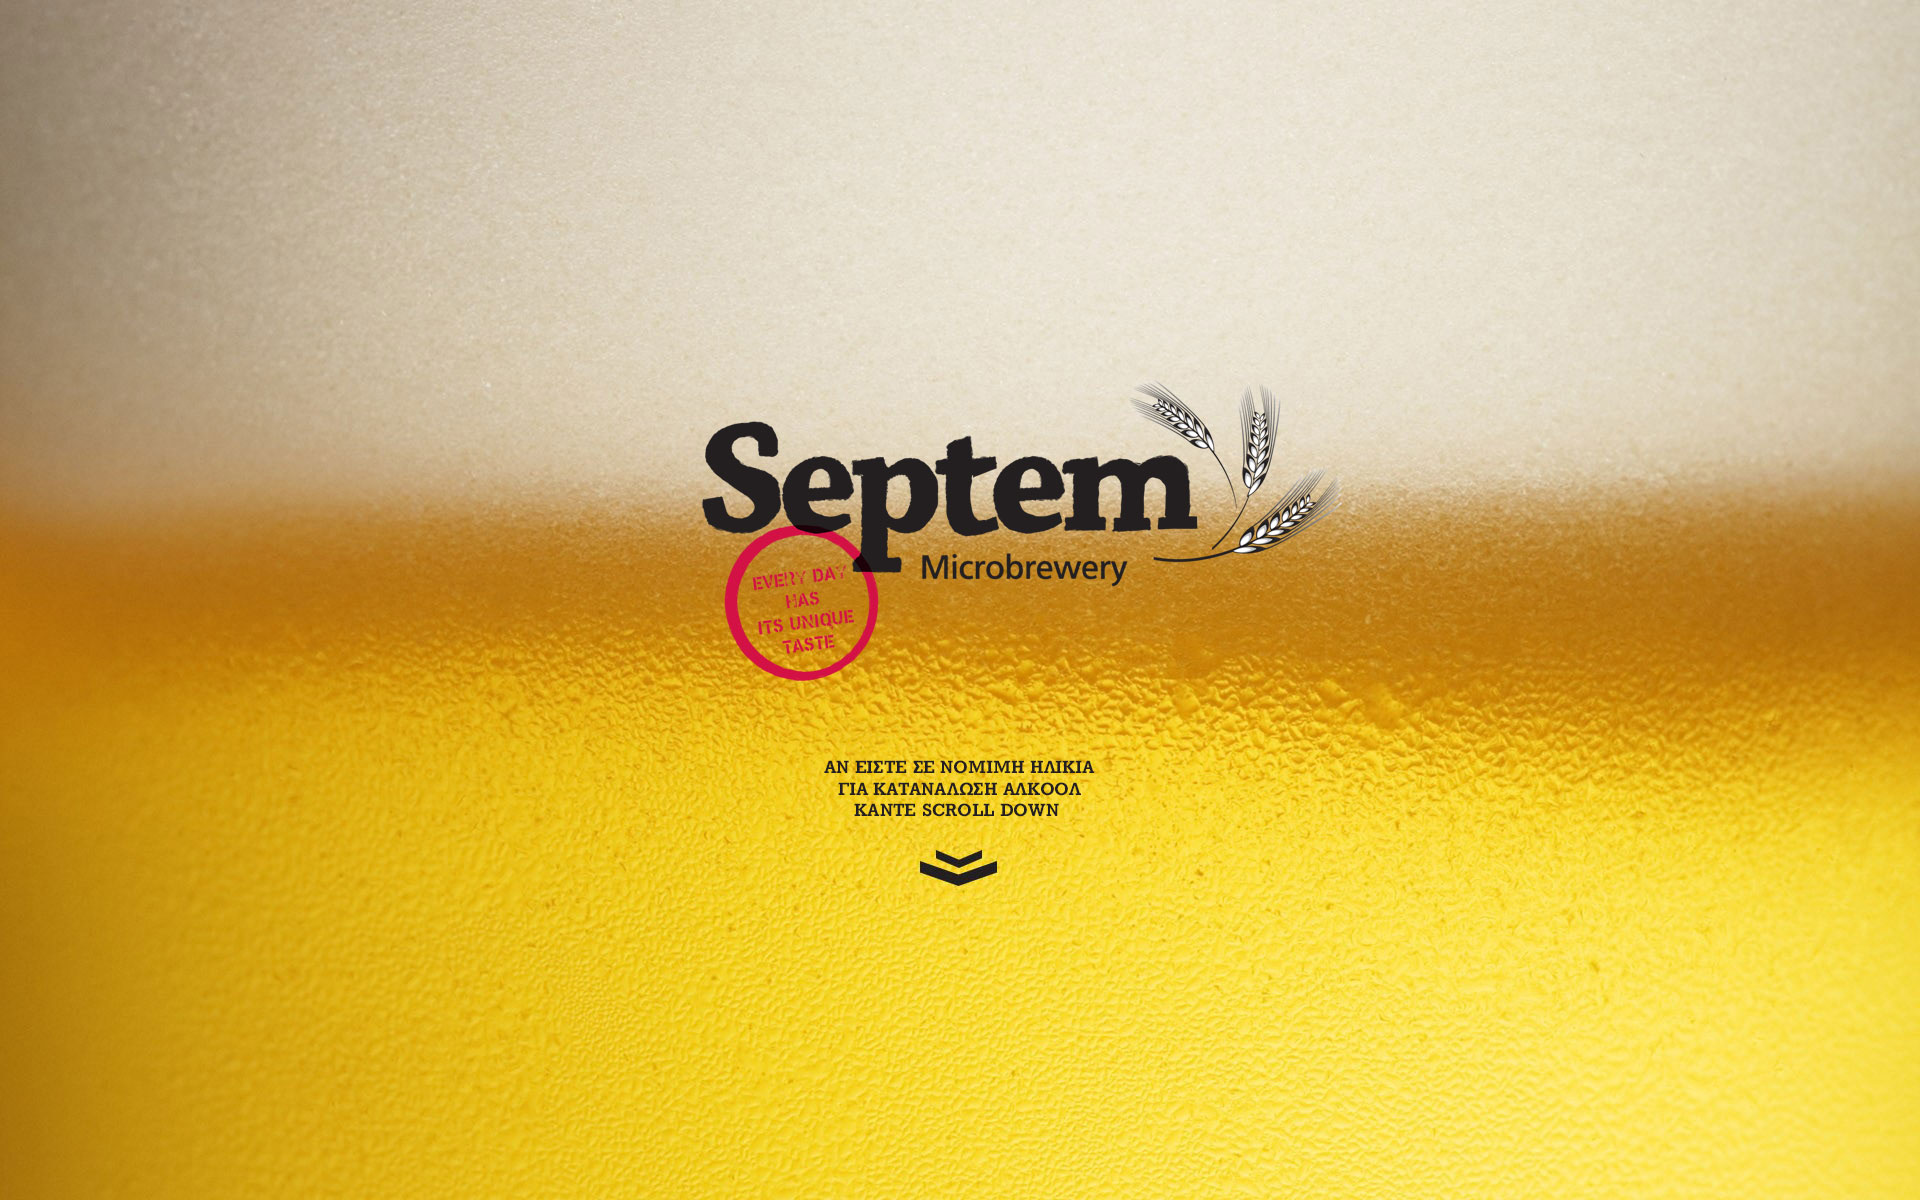 Septem Microbrewery - Legal Age Disclaimer